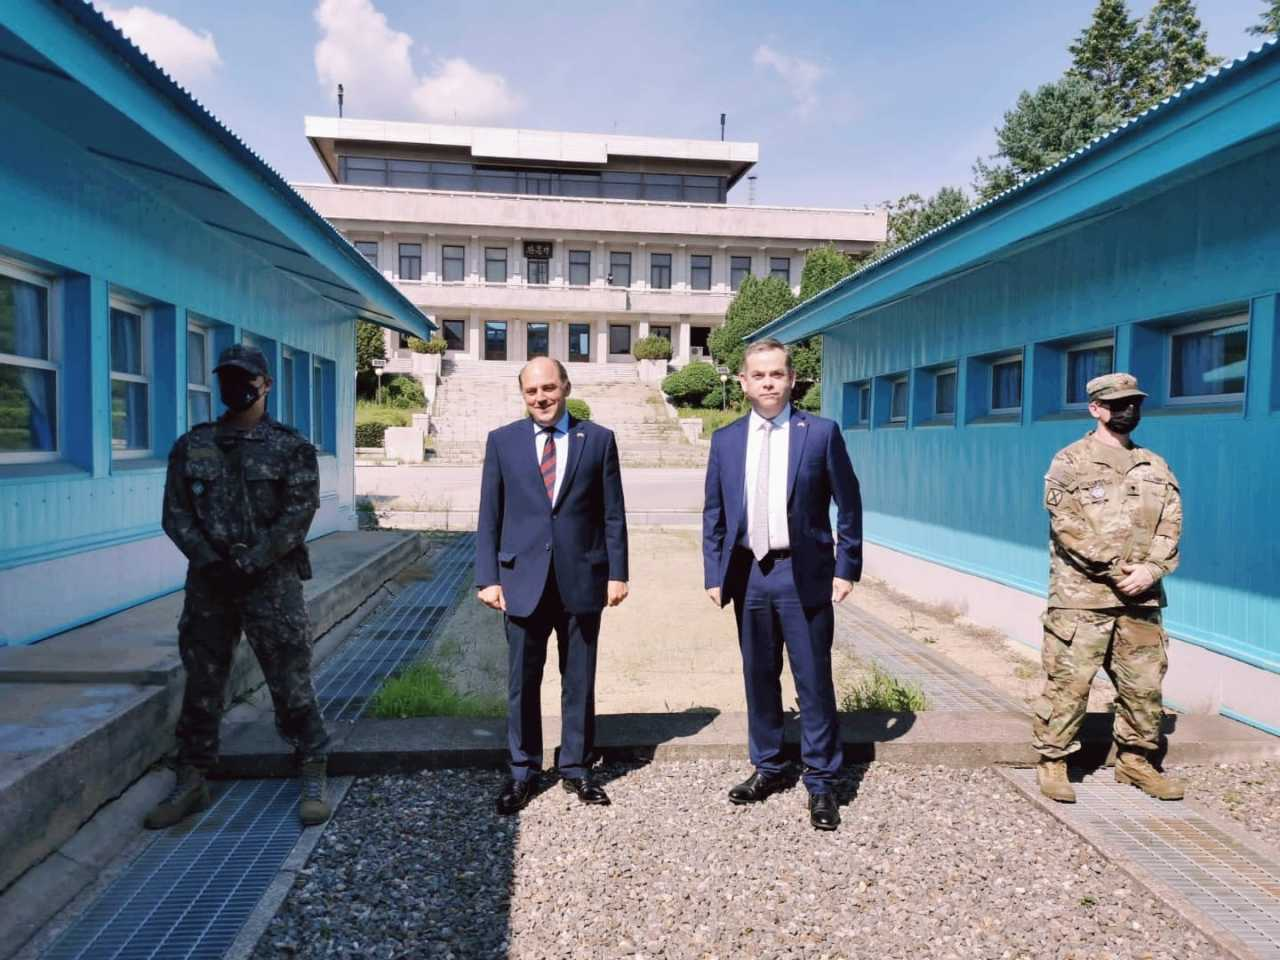 British Defense Secretary Ben Wallace (second from left) poses for a photo during a visit to the truce village of Panmunjom in the inter-Korean border on Wednesday, in this photo posted by the British Embassy in Seoul on its Twitter account. (Yonhap)